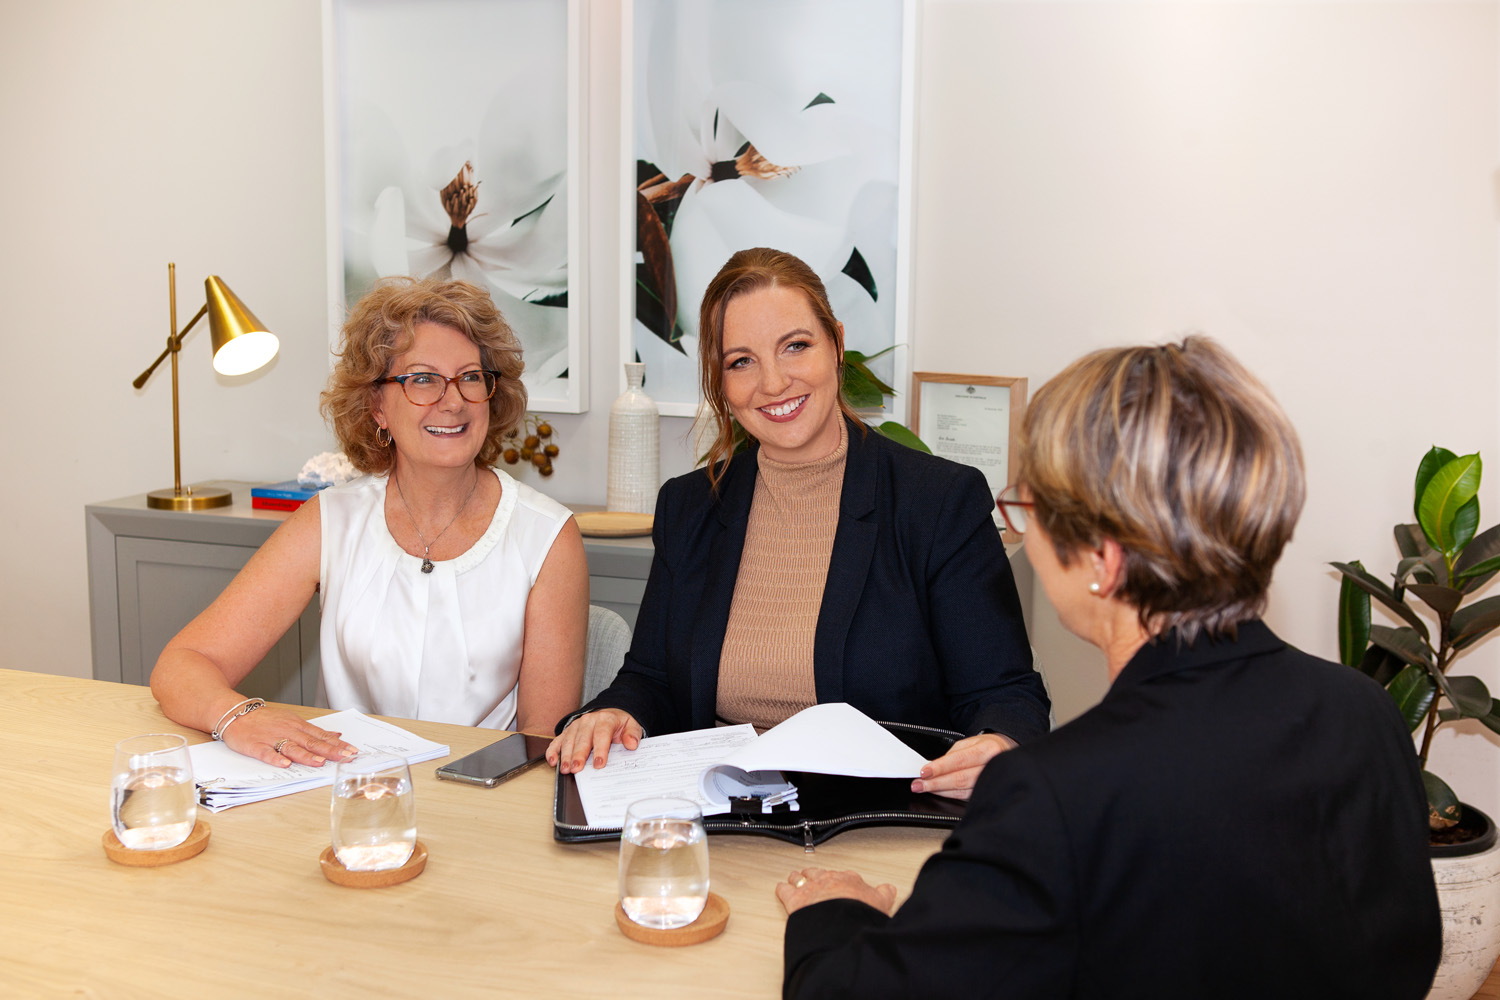 gold coast women of influence; gold coast branding photography; business profile photography; gold coast business photography; gold coast law; gold coast lawyers; gold coast commercial photography; gold coast headshot photography; gold coast photographer; gold coast business photographer; bundall photographer; benowa photographer; lana noir; DSL Law; @lananoir